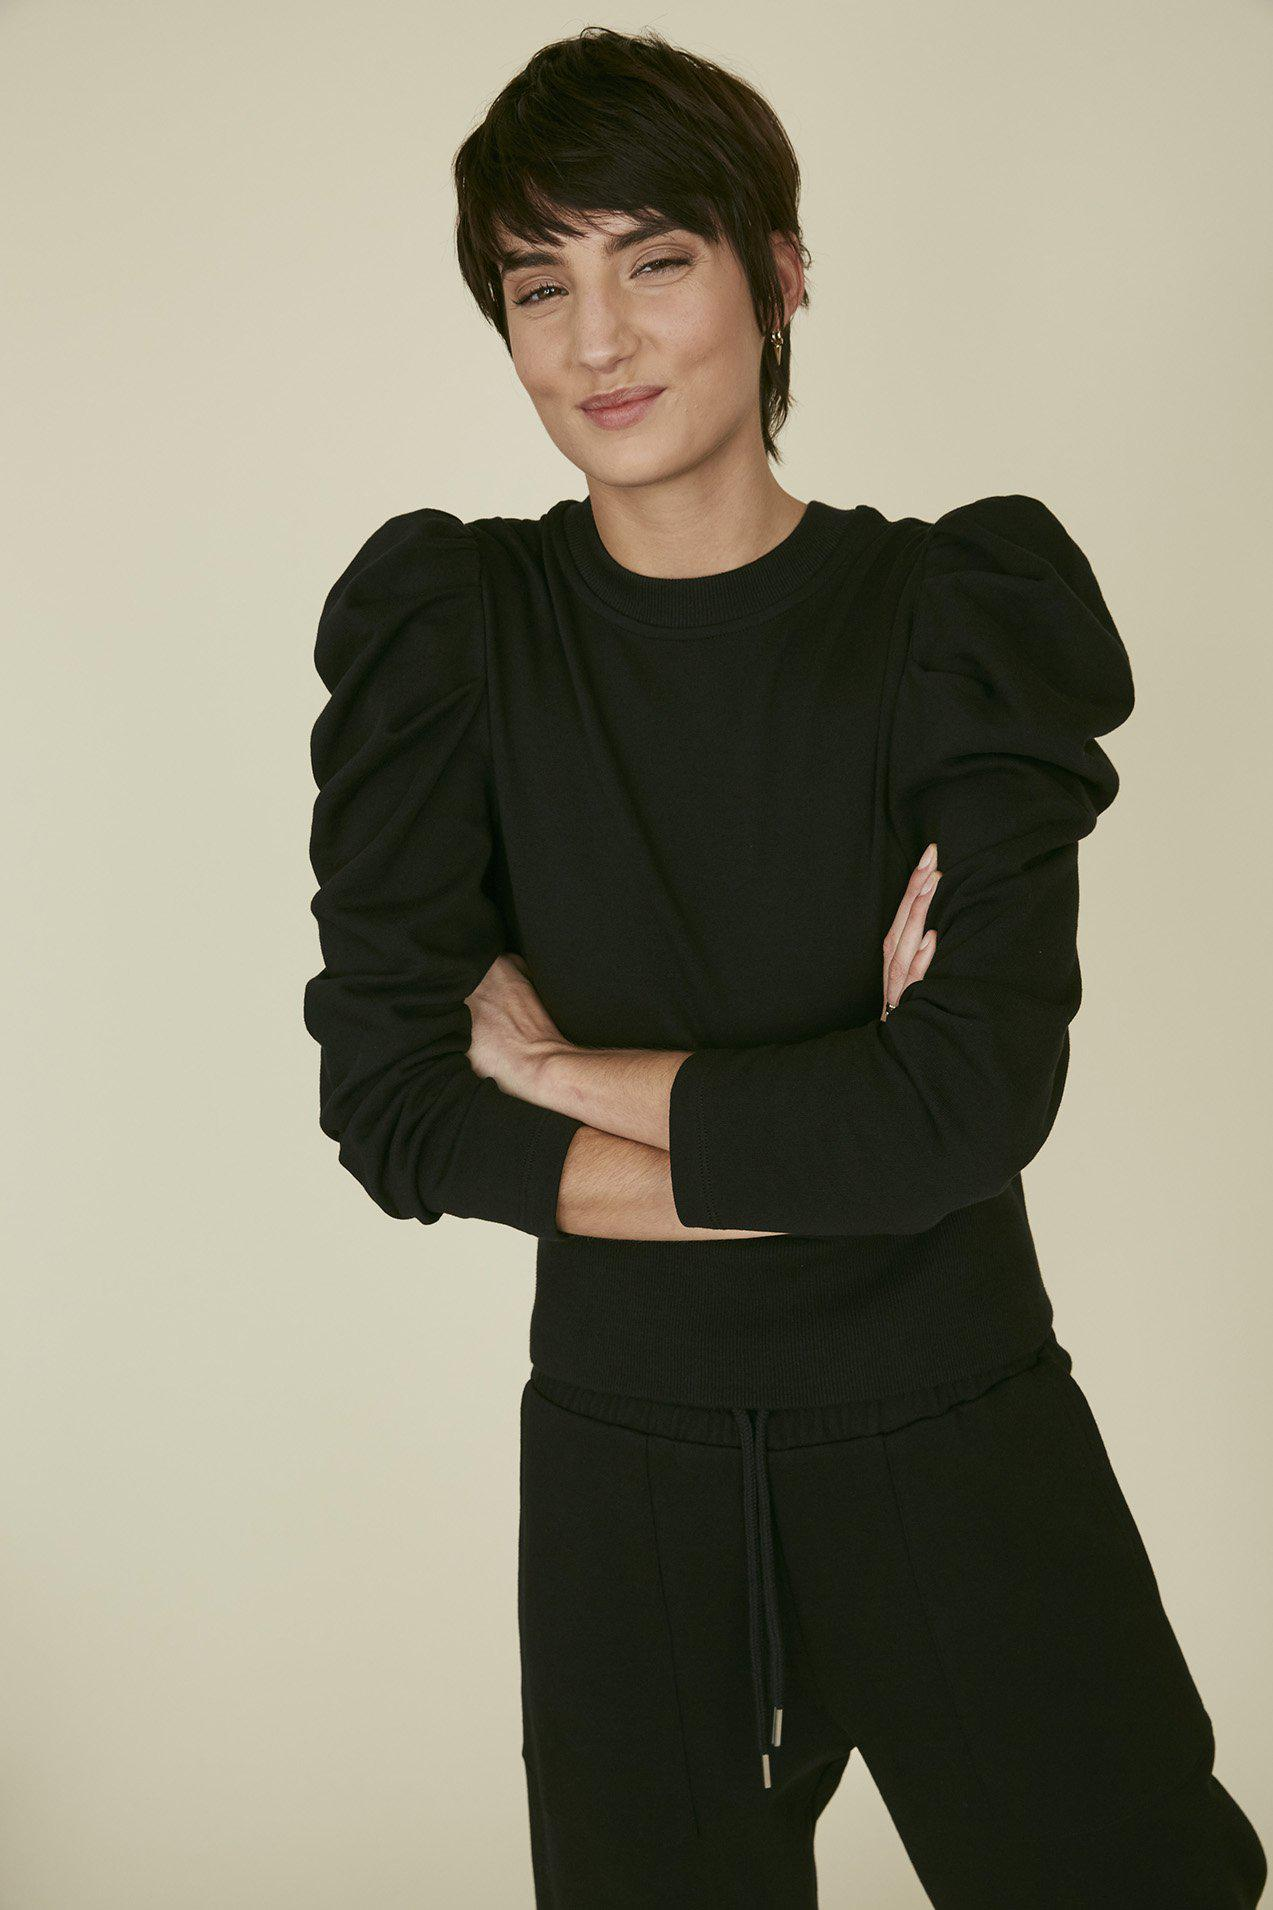 The Just Enough Puff Sweatshirt in Black 3